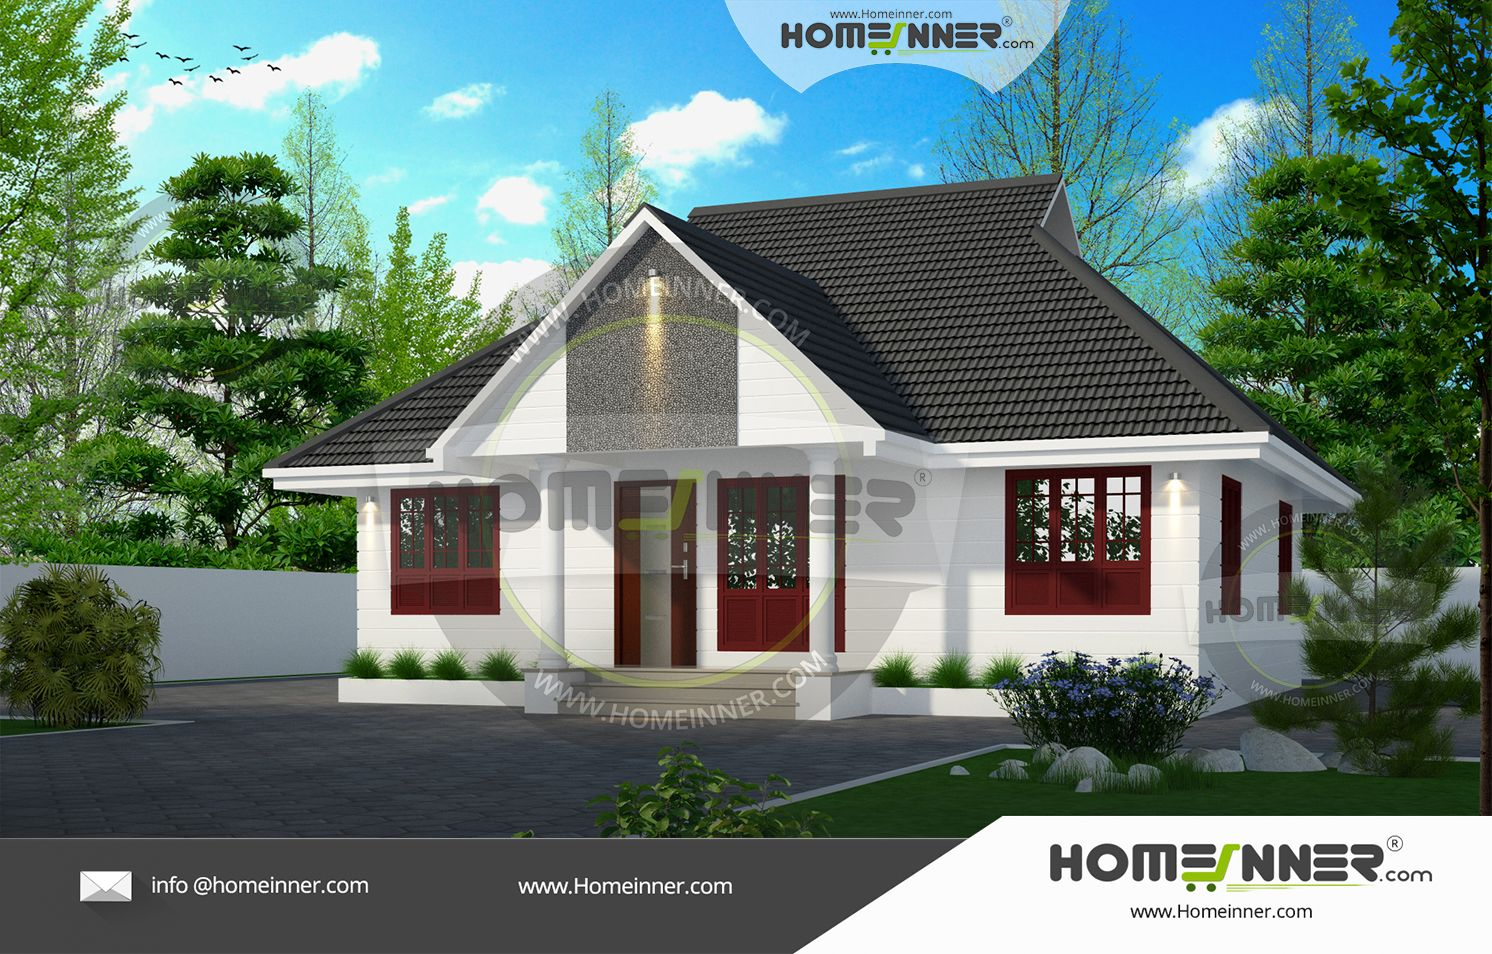 HIND-3043 | Free House plans ,Home Design , Interior Designs Ideas ...